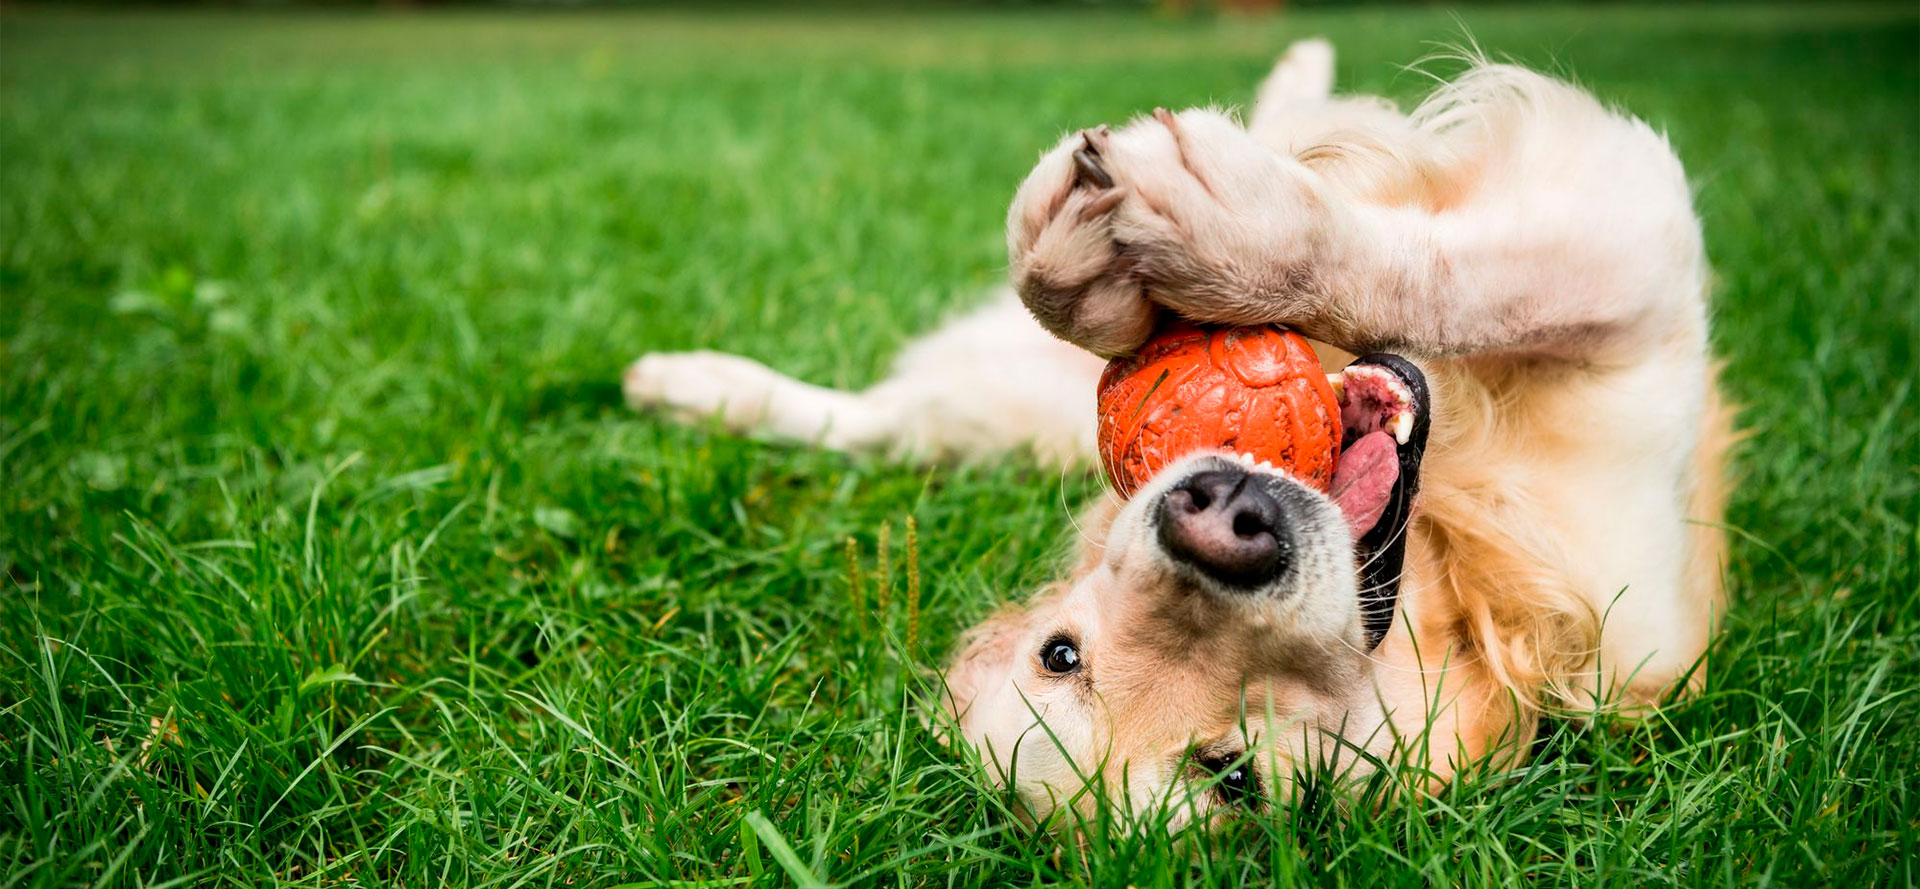 Ball for Your Dog.